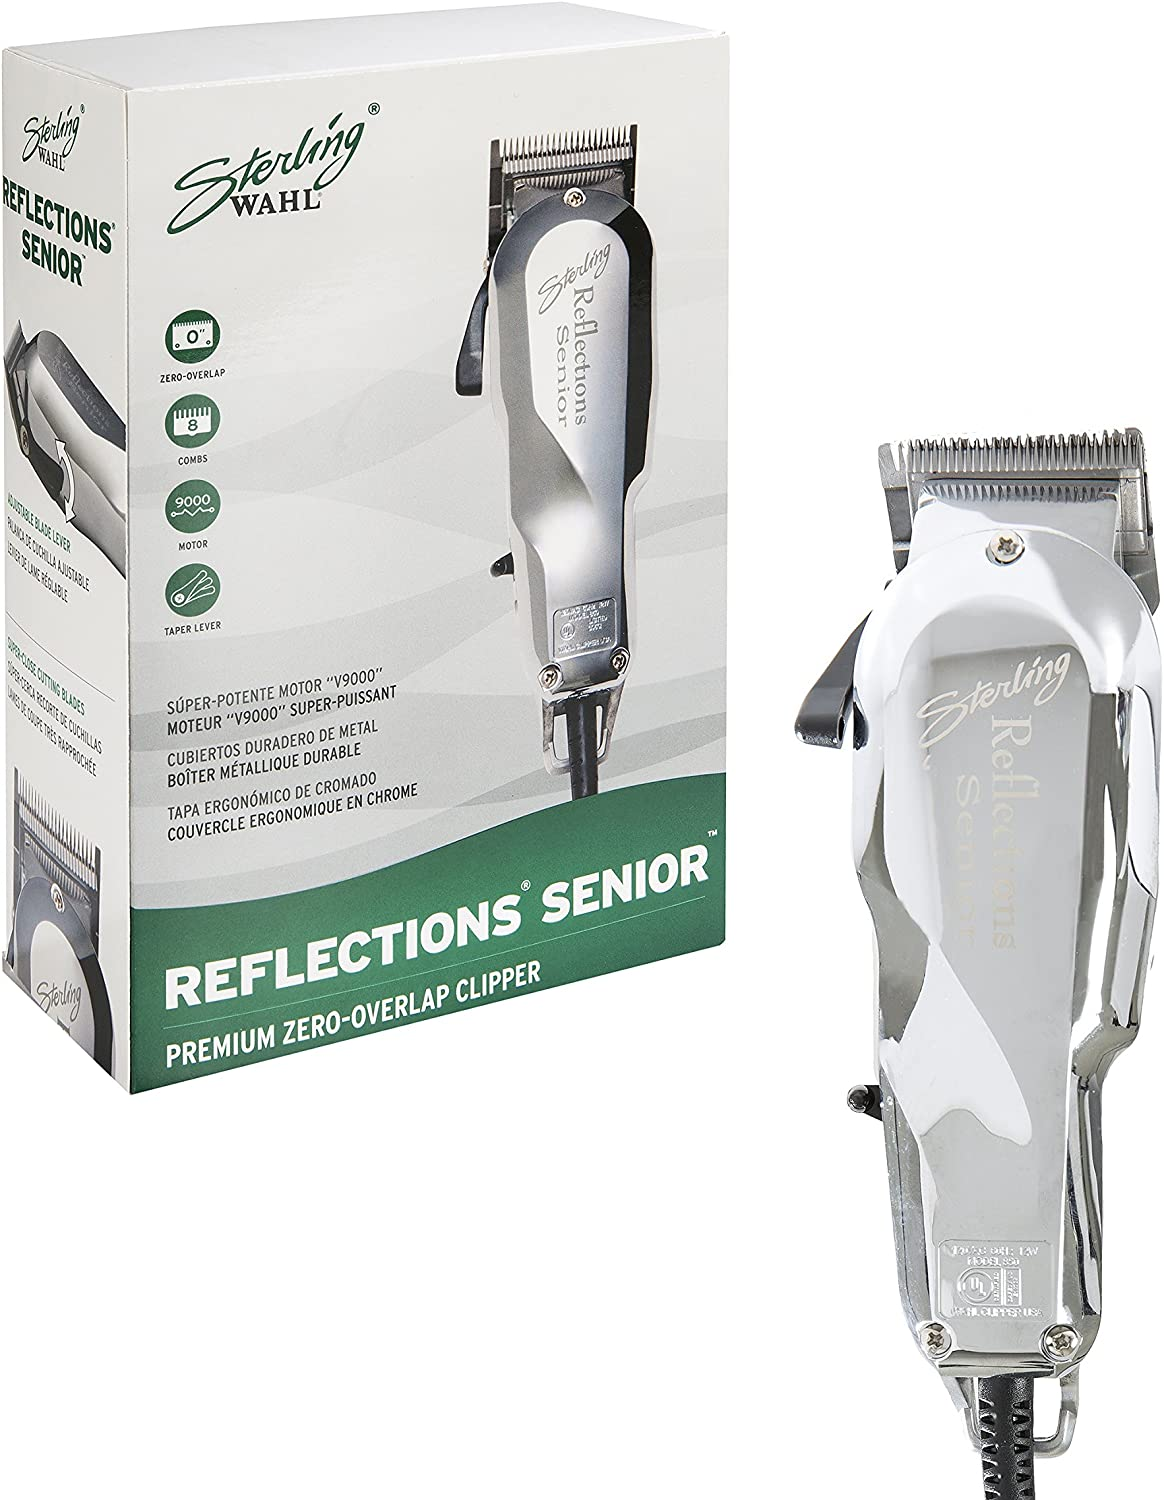 Wahl Professional 8148